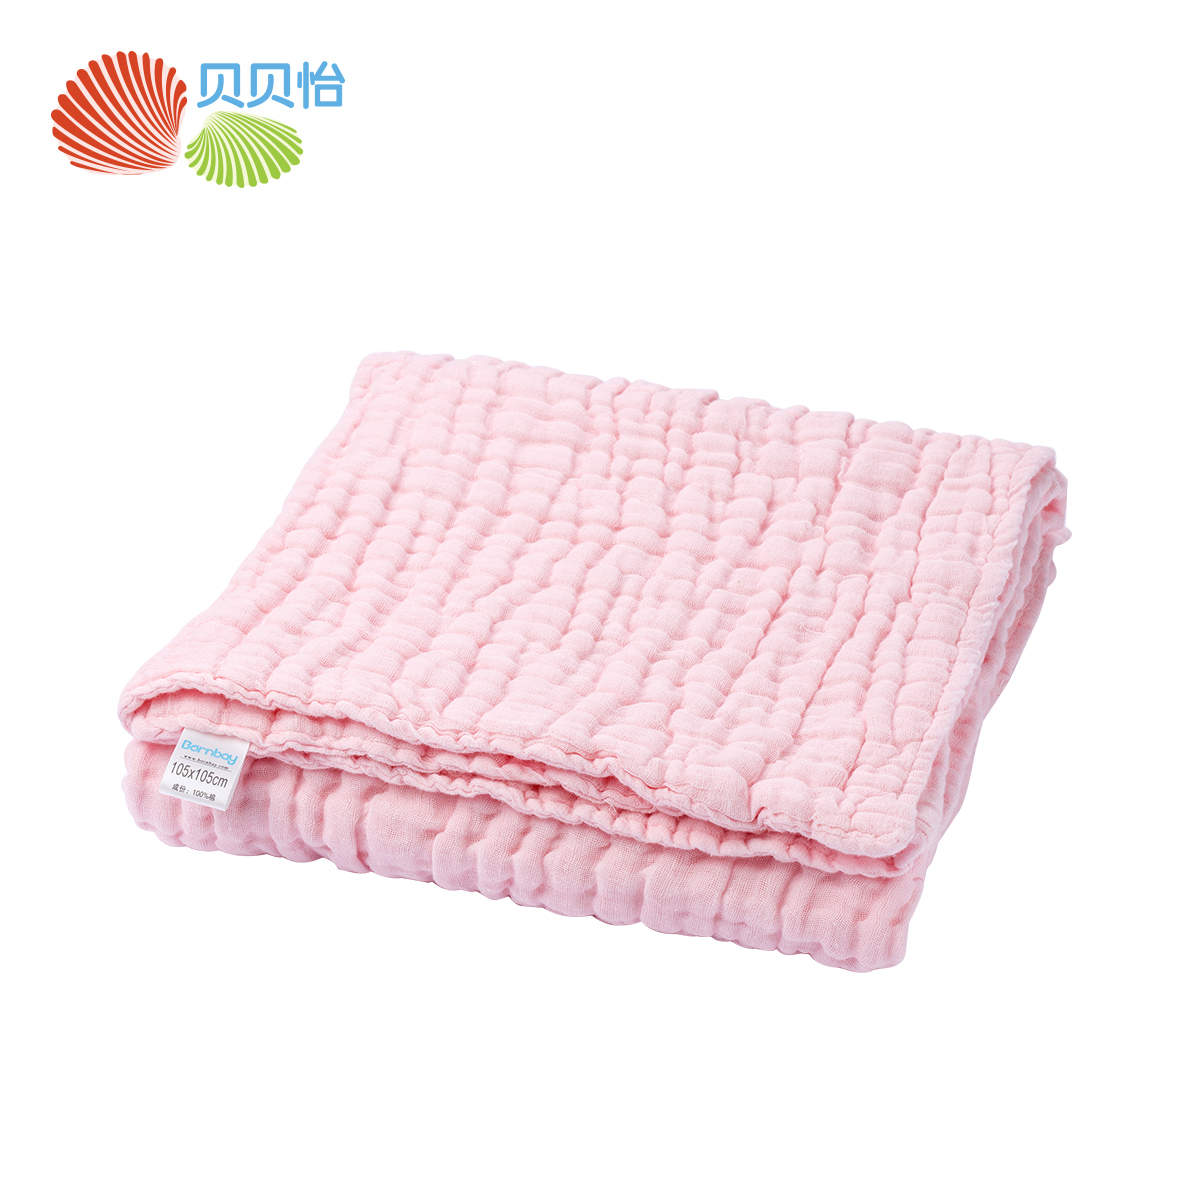 Beibei yi newborn baby summer baby supplies baby 6 layers of gauze baby bath towel cotton super soft absorbent 151P078